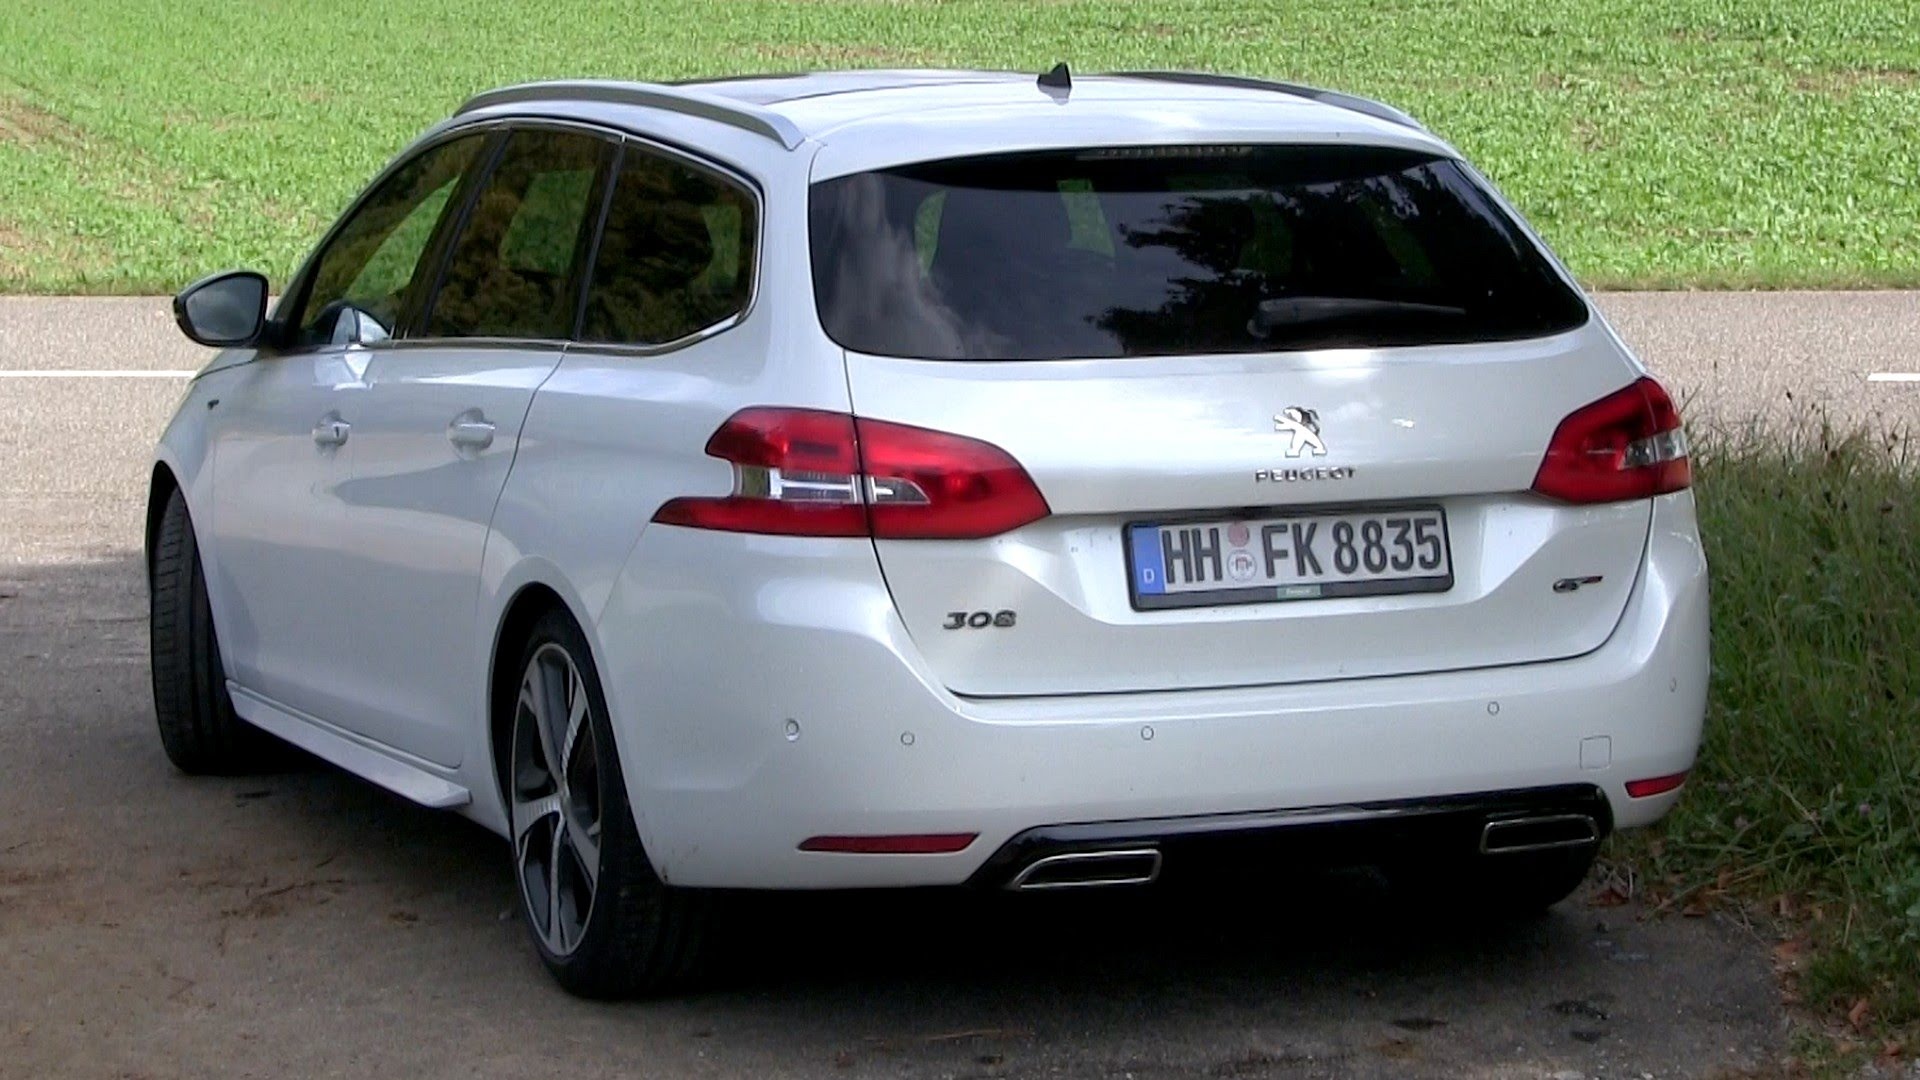 2016 peugeot 308 gt wagon acceleration test the golf gtd and focus st rival autoevolution. Black Bedroom Furniture Sets. Home Design Ideas